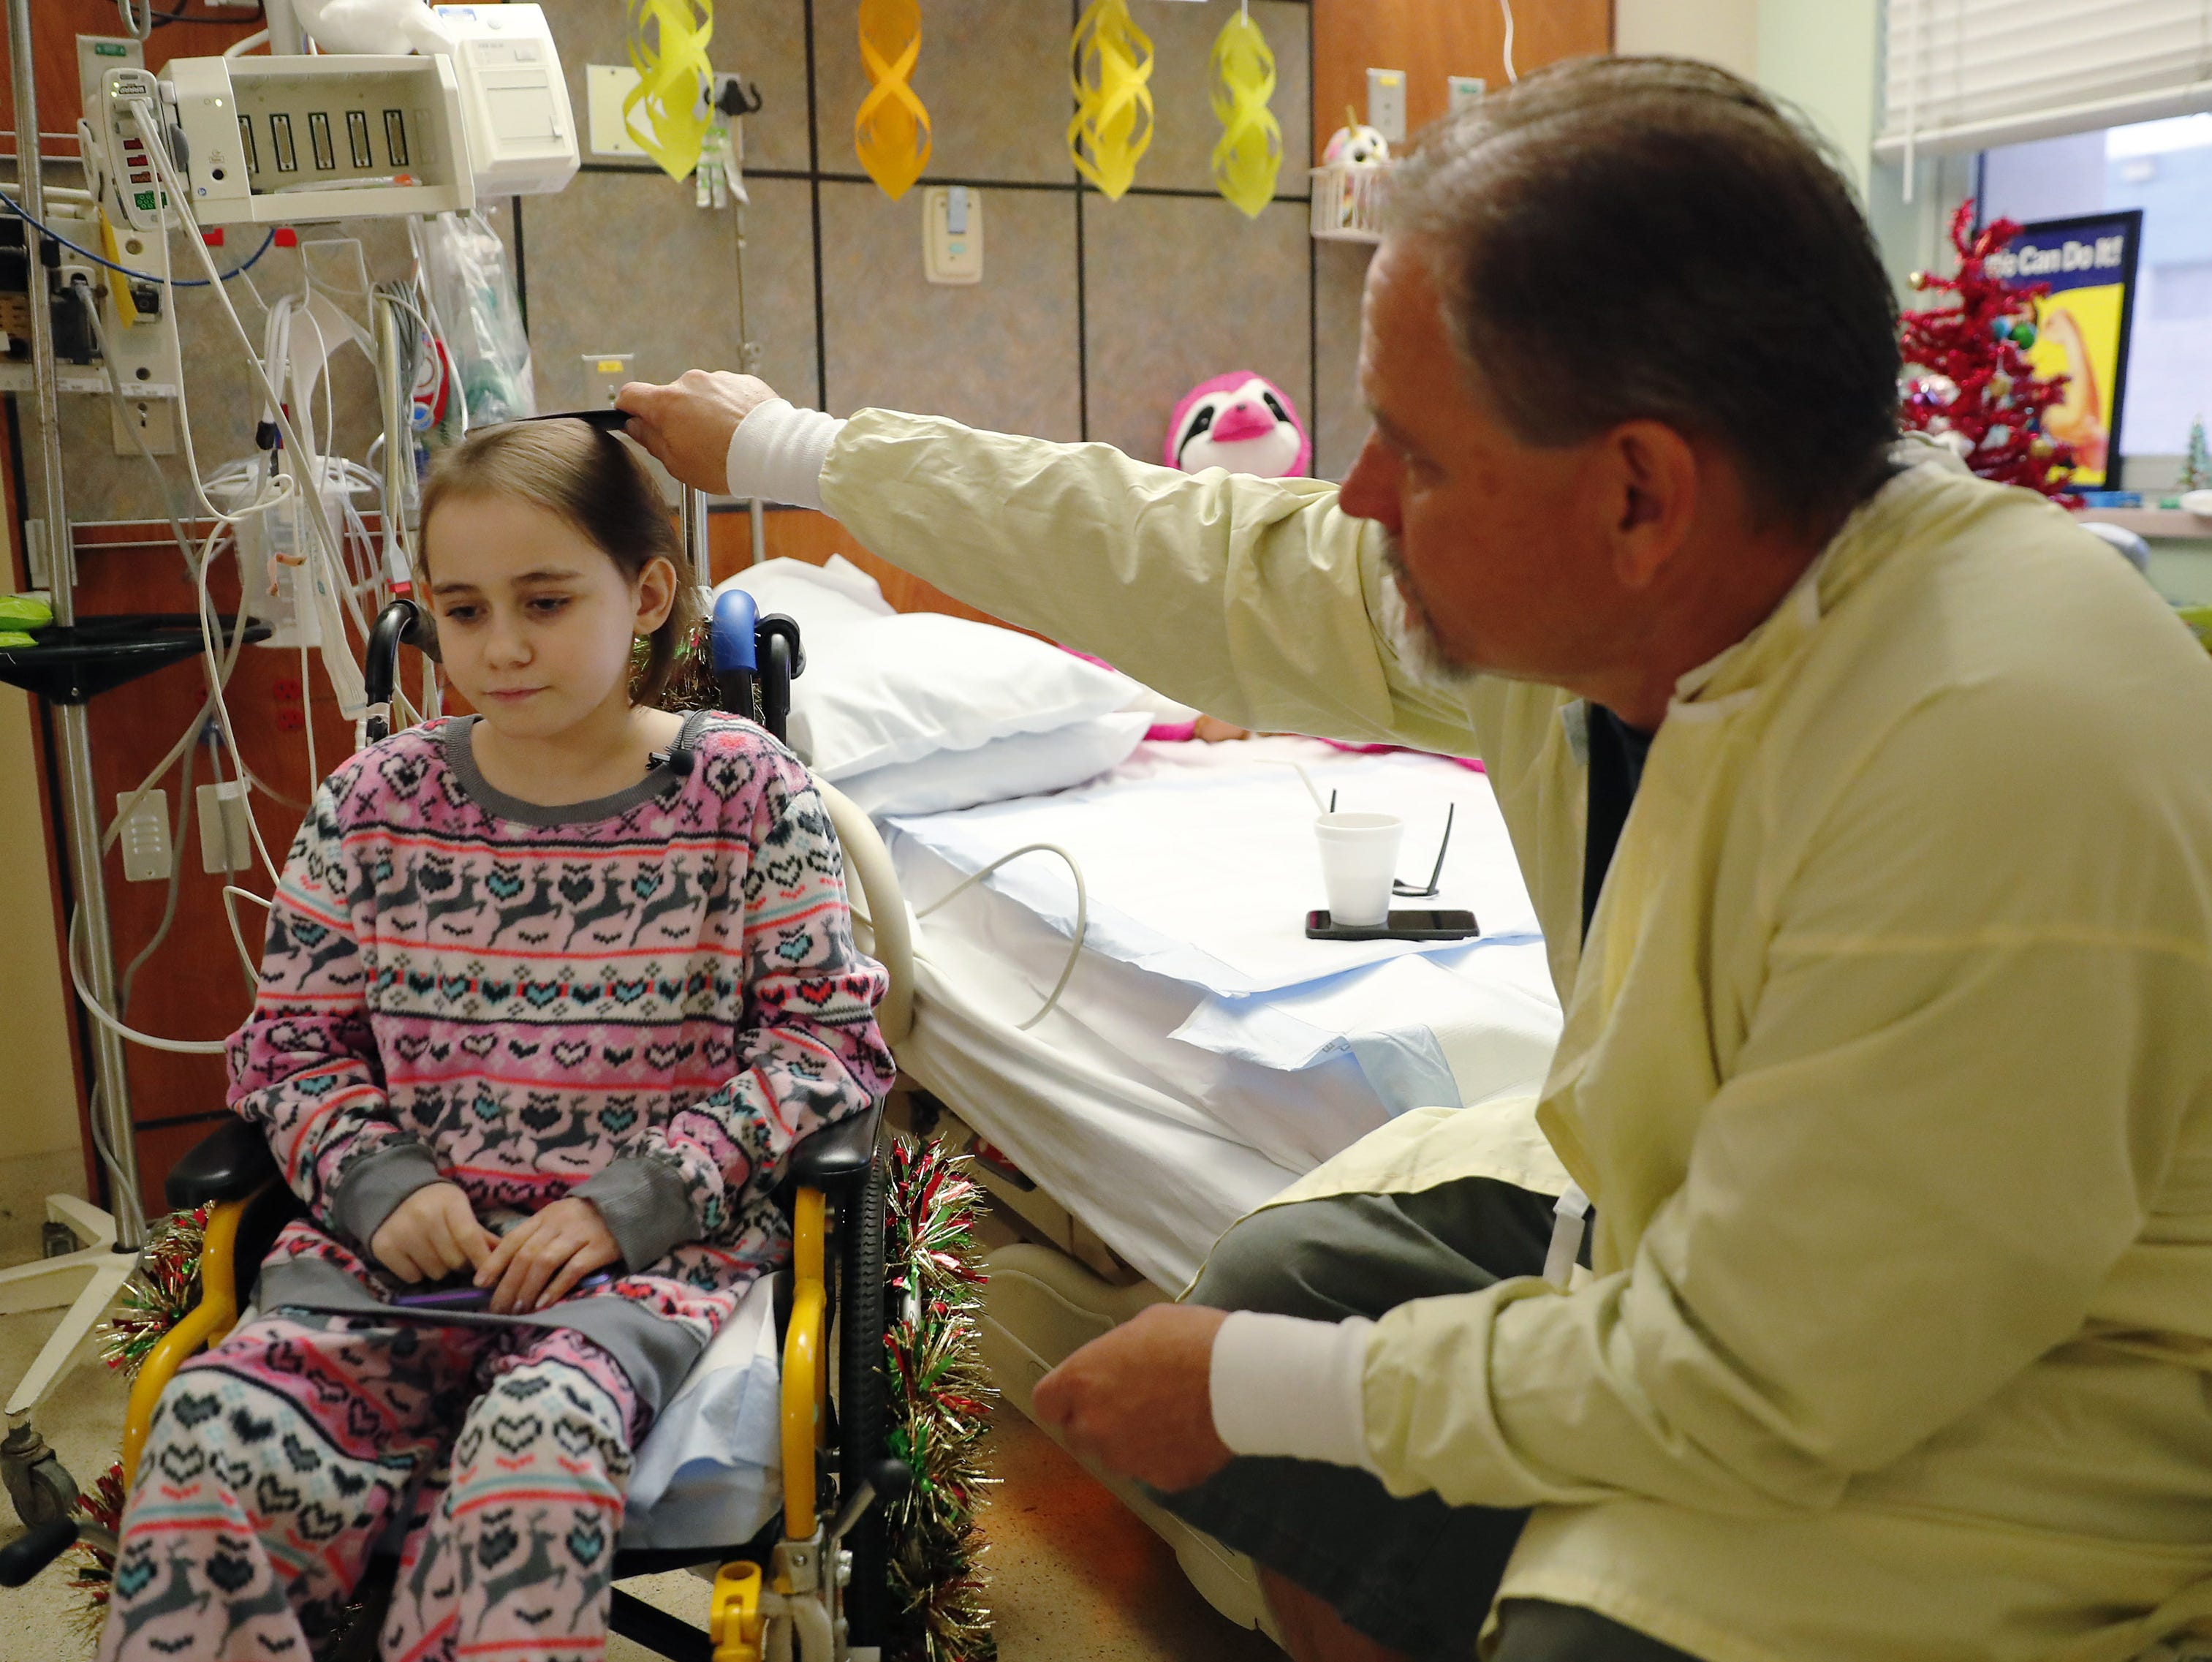 Isabella McCune has her hair combed by her dad, J.D., in her room at the Arizona Burn Center in Phoenix Dec. 12, 2018. The 9-year-old was severely burned in a home accident in March.